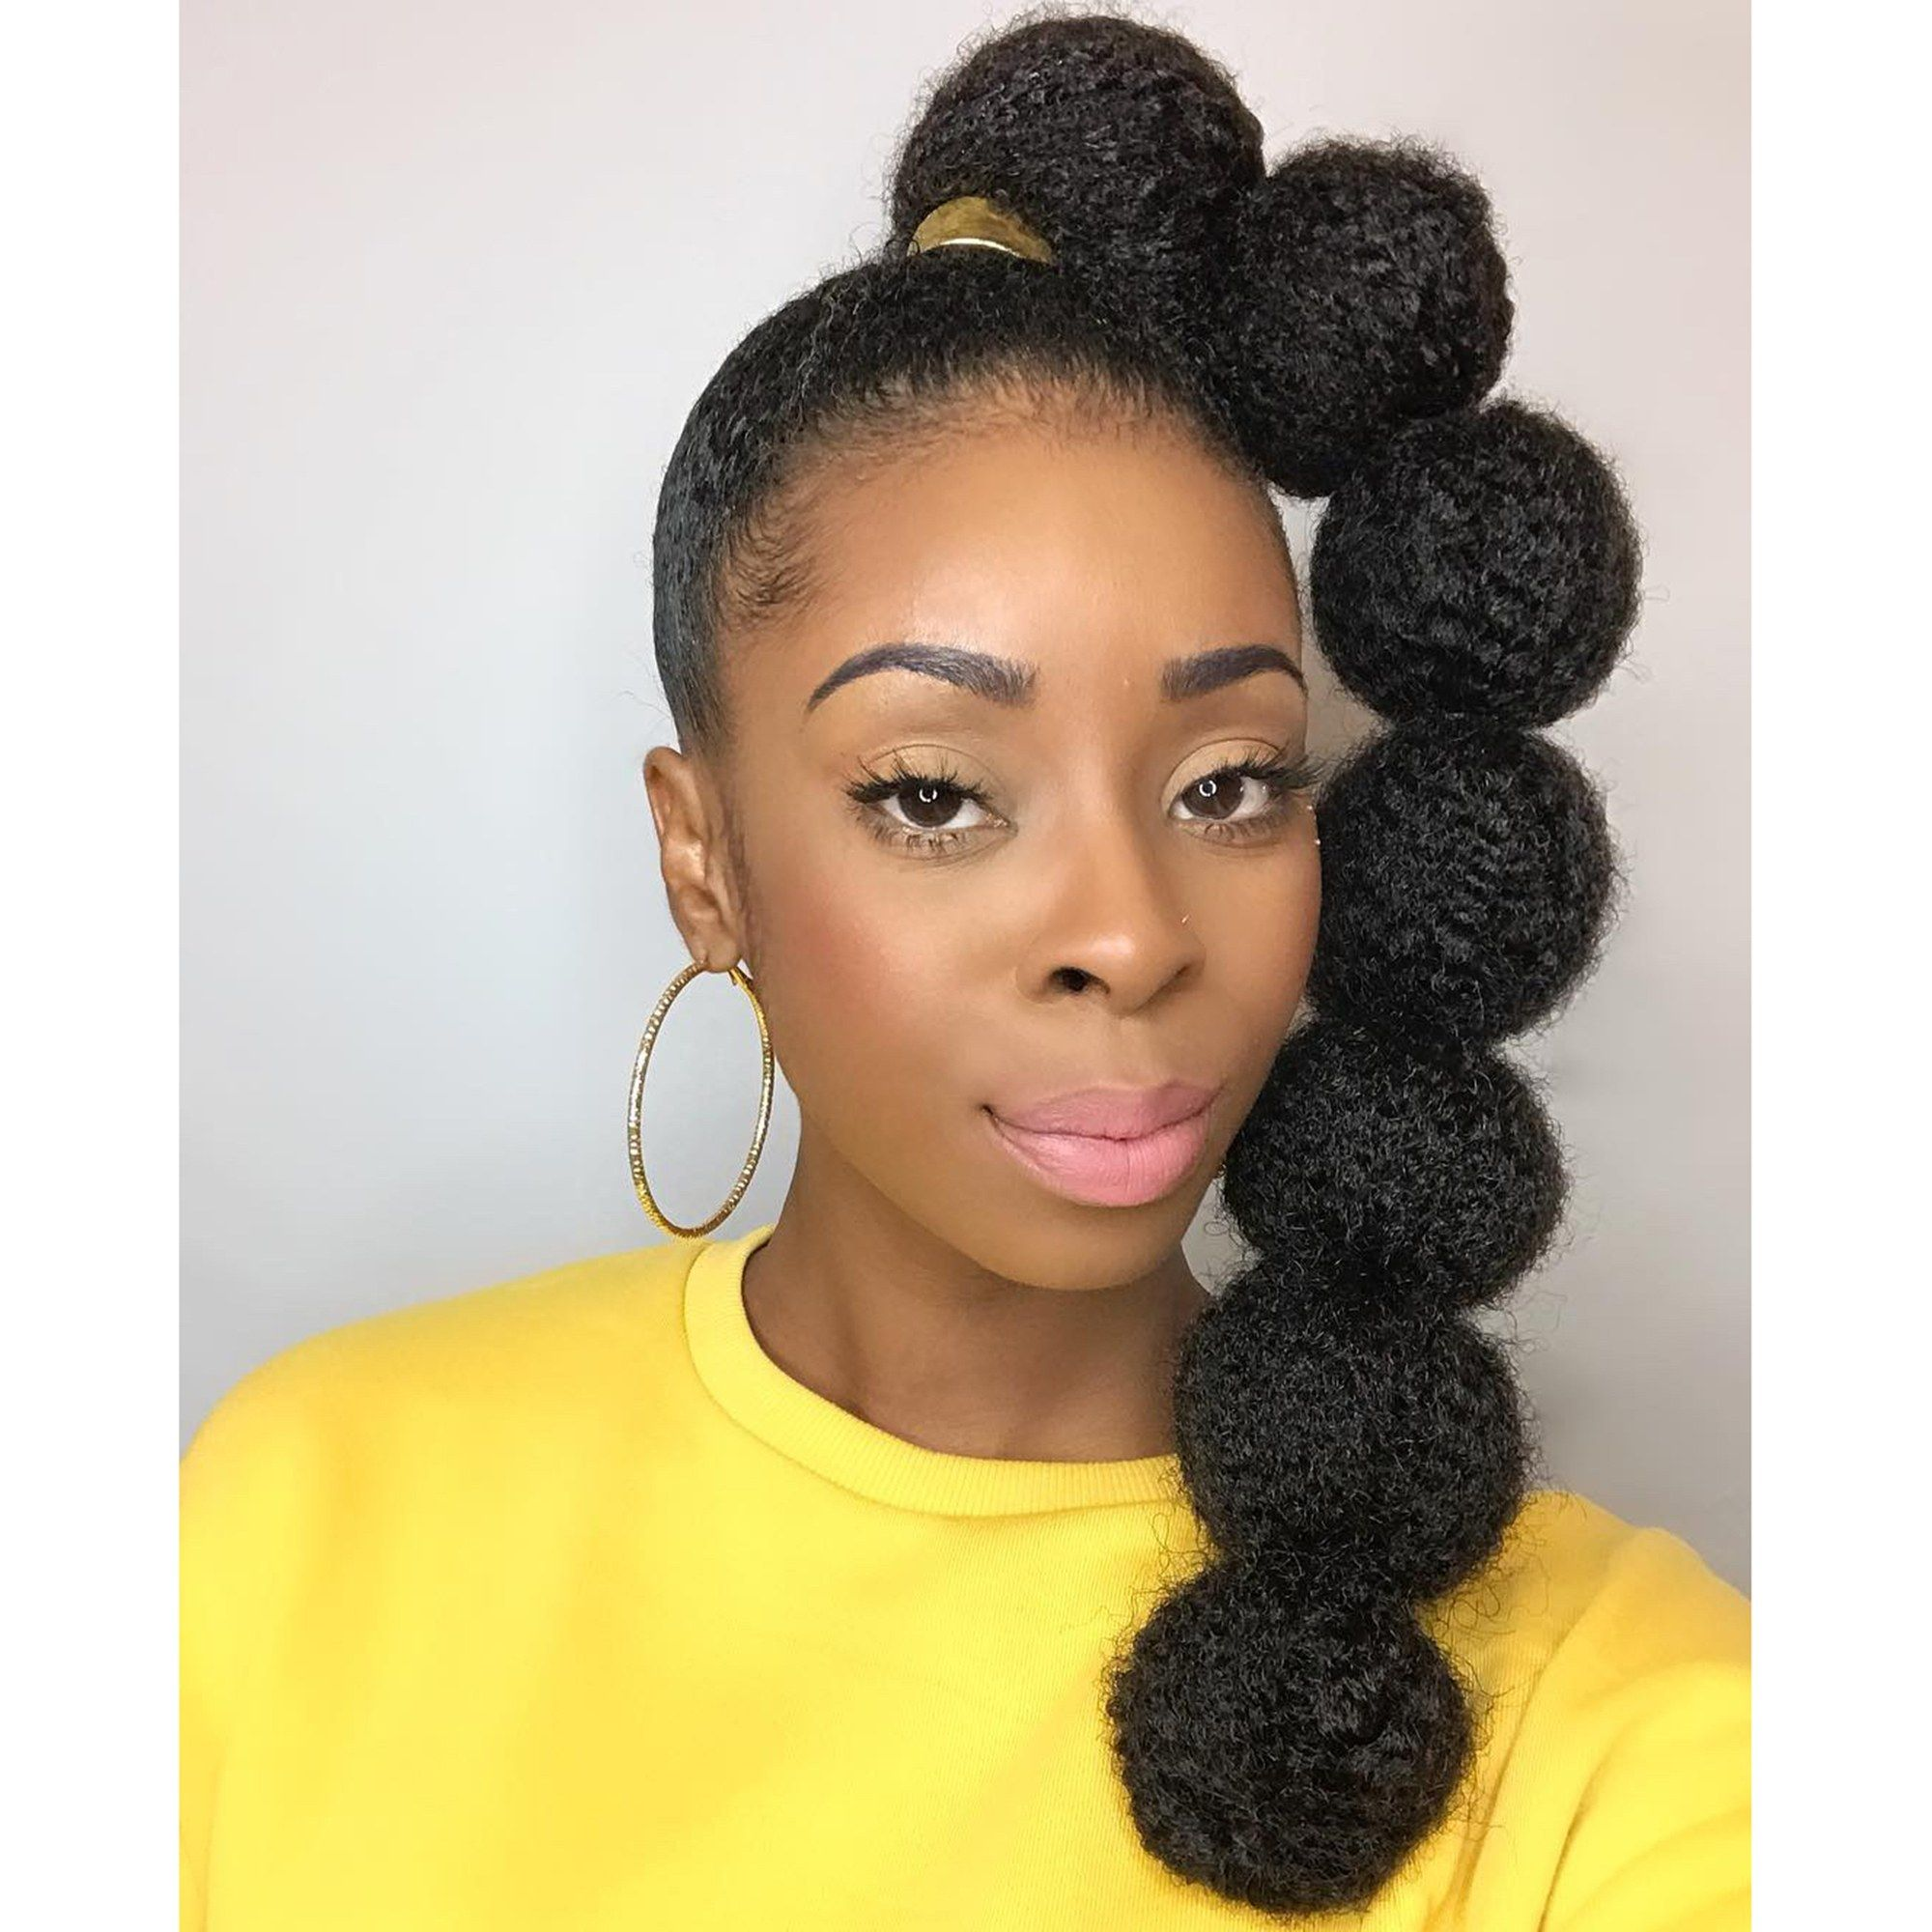 Afro Puff Bubble Ponytails Are Trending On Instagram With Images